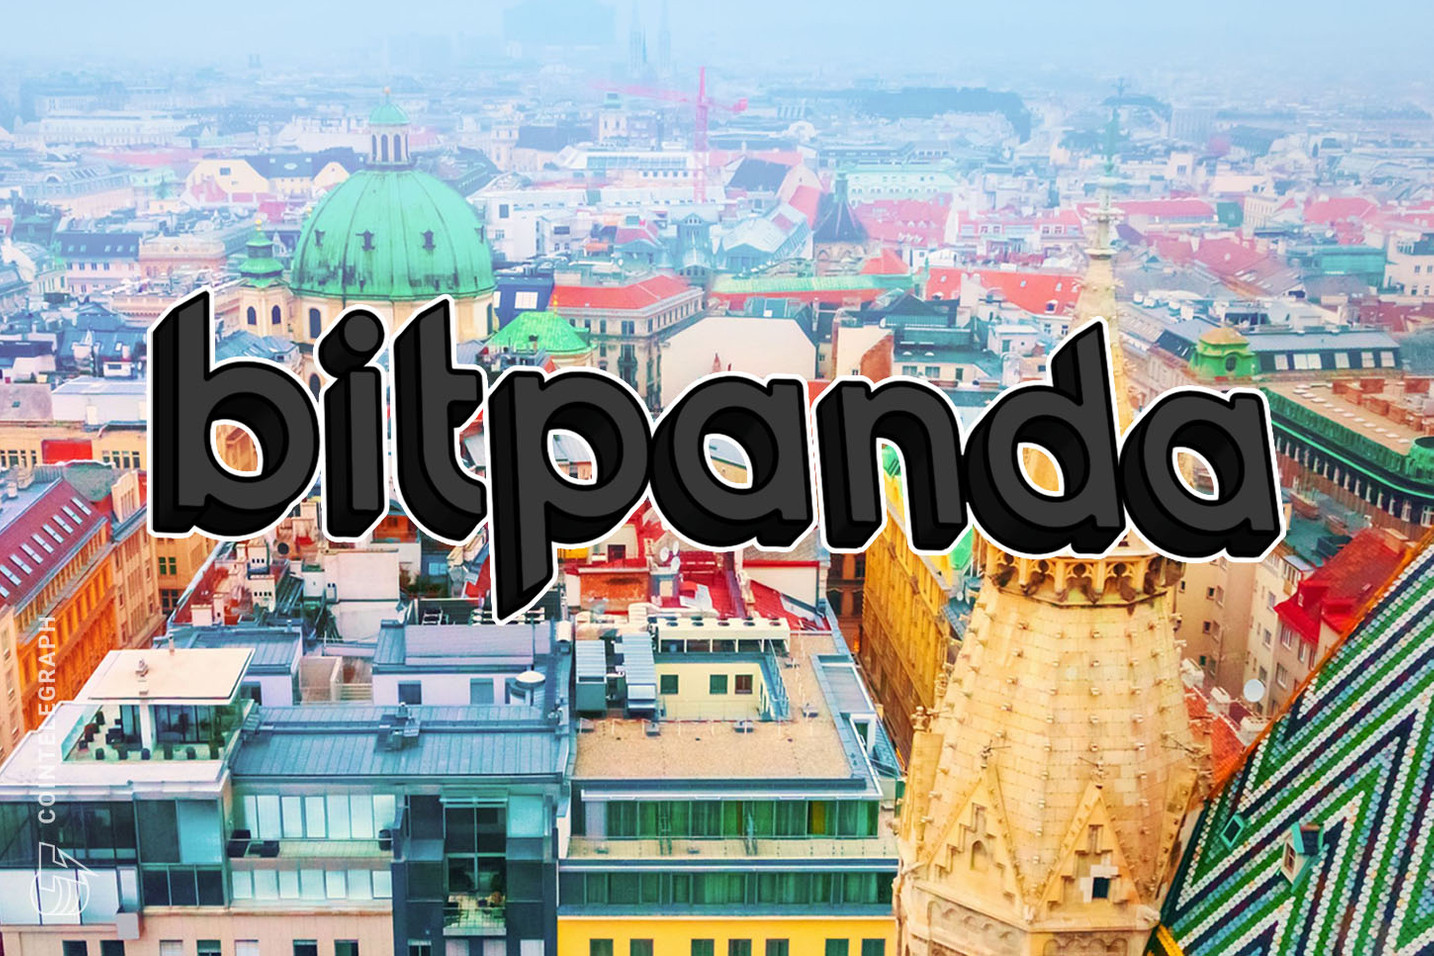 Bitpanda Surpasses 1 Million Users Milestone